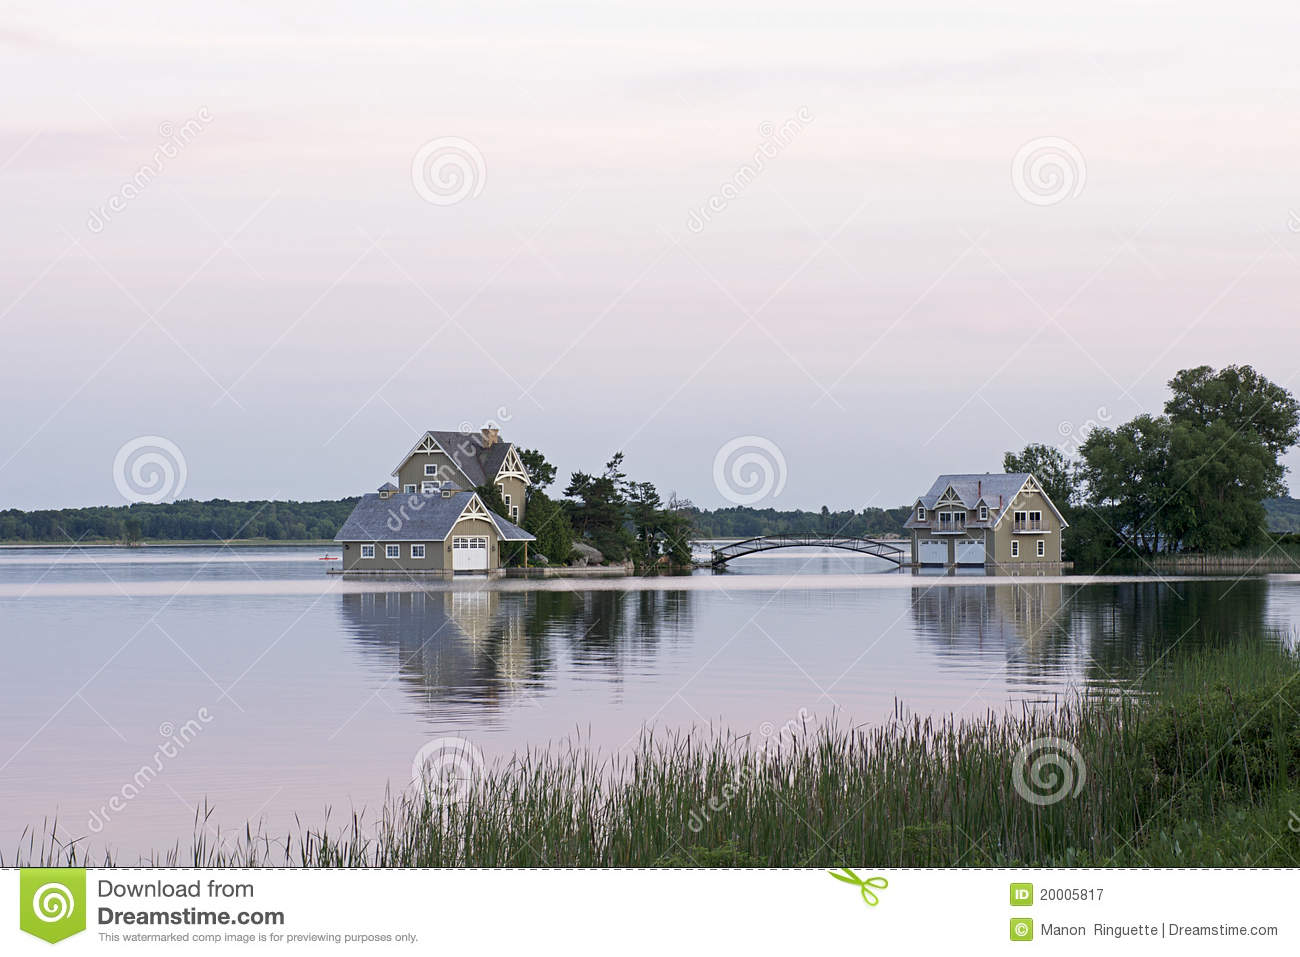 If I Win The Lottery additionally Summer Rushy Lake View With Some Plants On Water Surface Image 3218451 furthermore Outdoor Stage 2 together with 114303 in addition Park Bridge Image 4366853. on lake home plans with water view